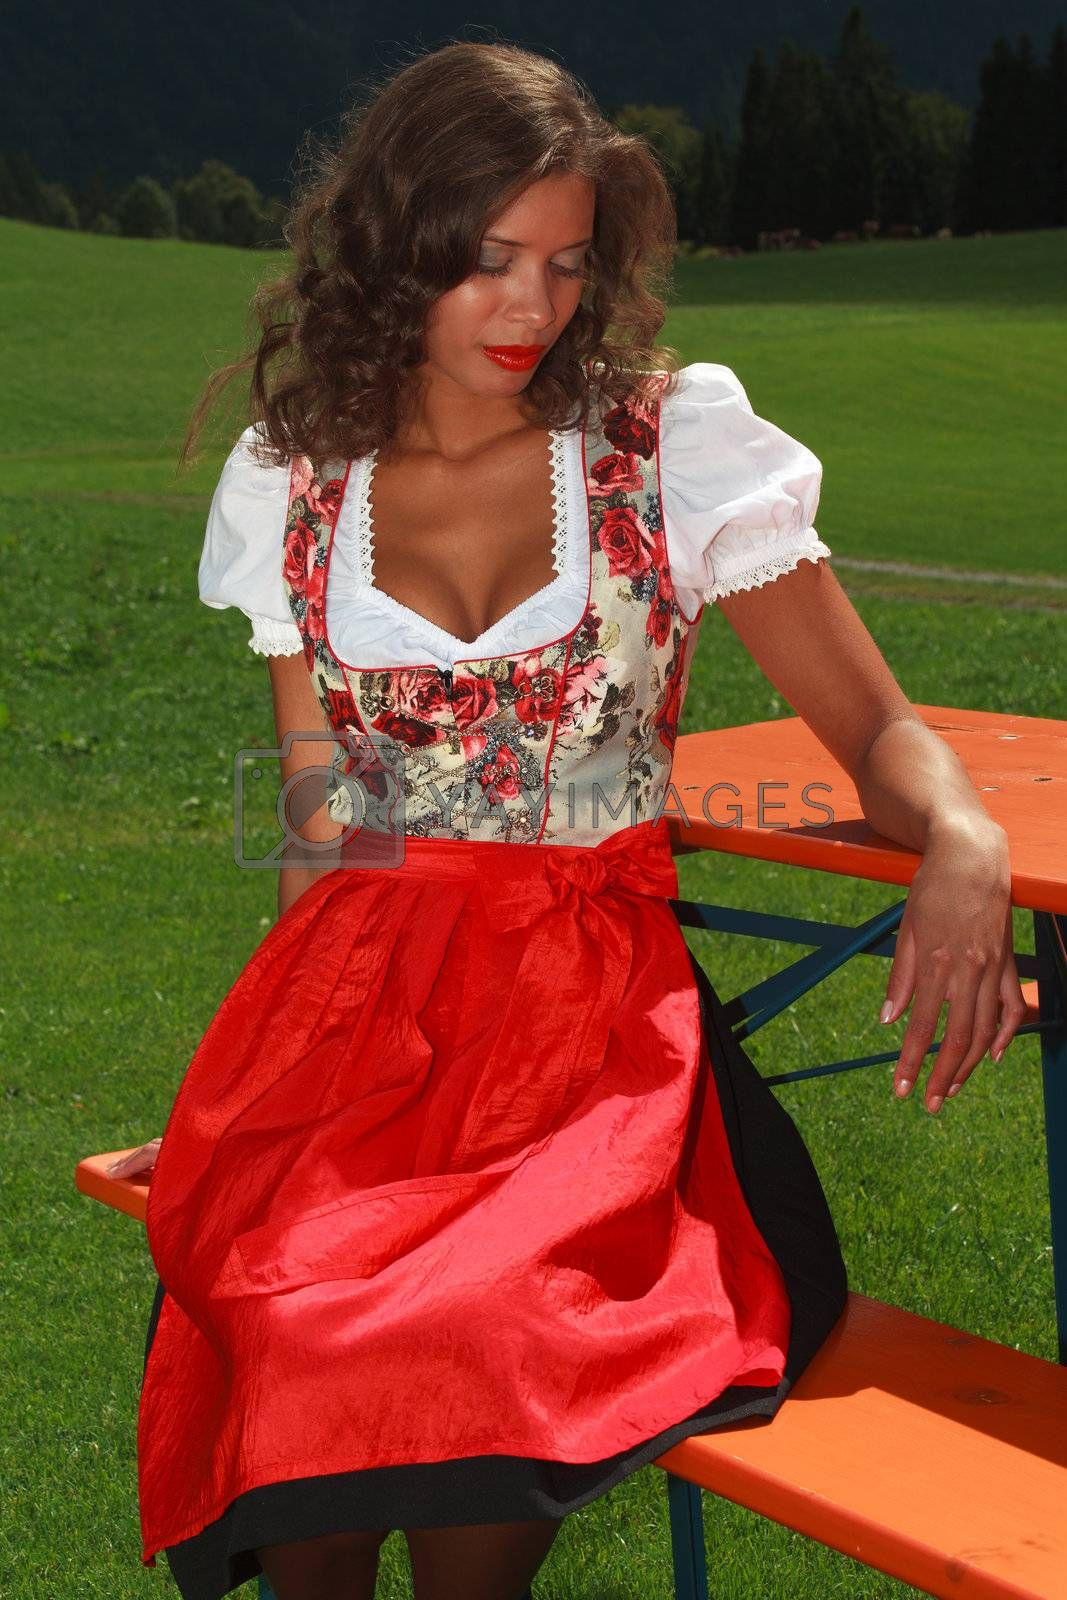 Young beauty in Bavarian dress sitting on a bench dreamy